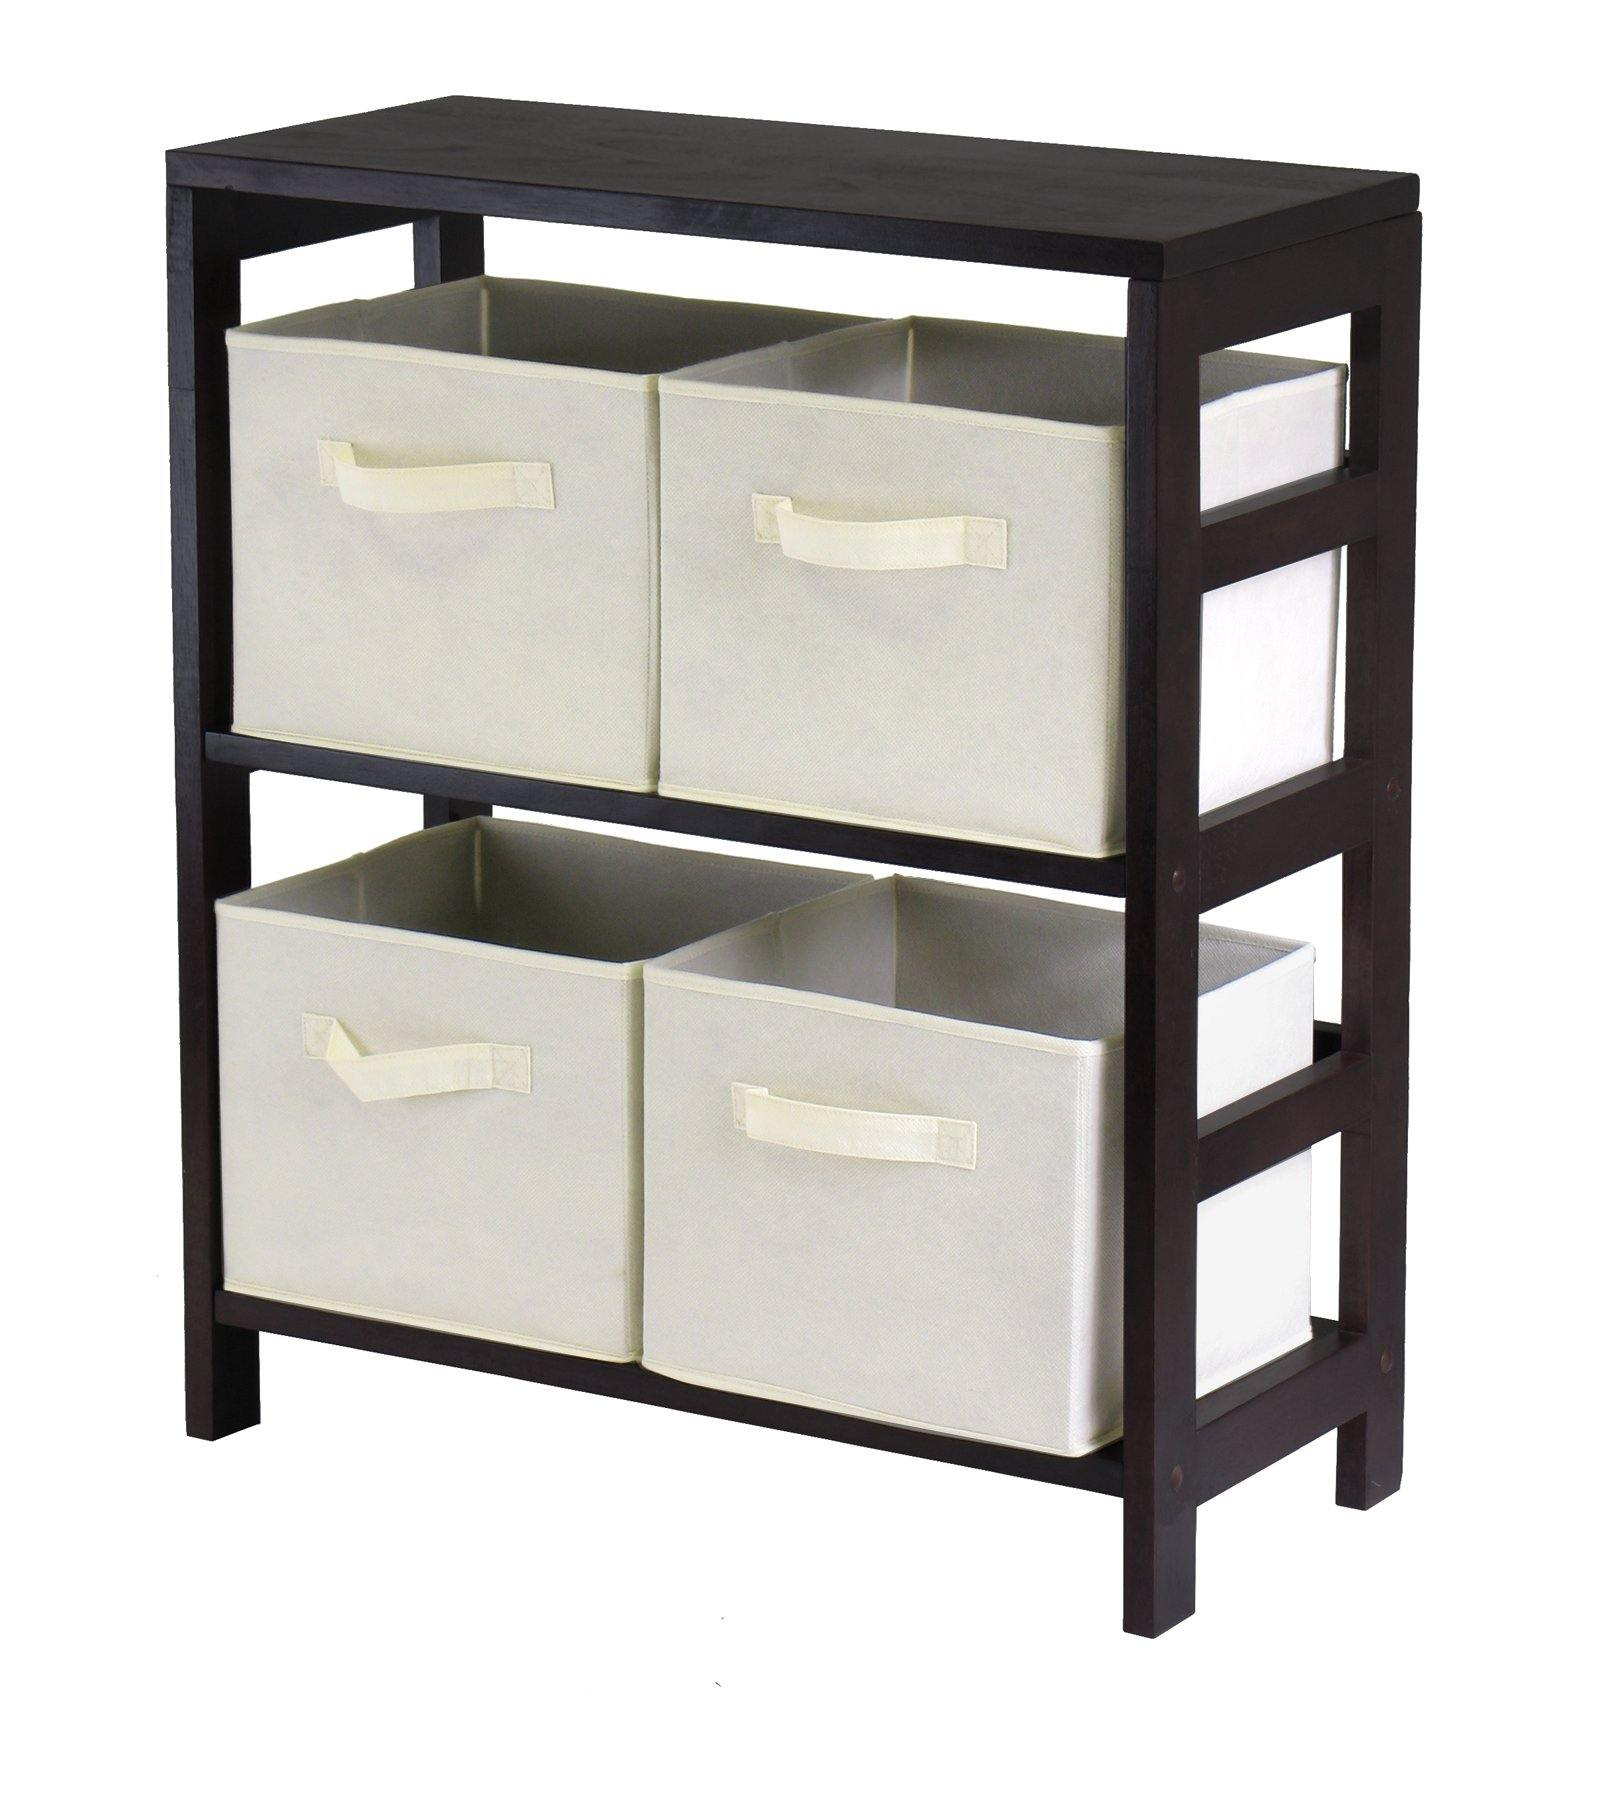 Capri 2-Section M Storage Shelf with 4 Foldable Beige Fabric Baskets - My USA Furniture